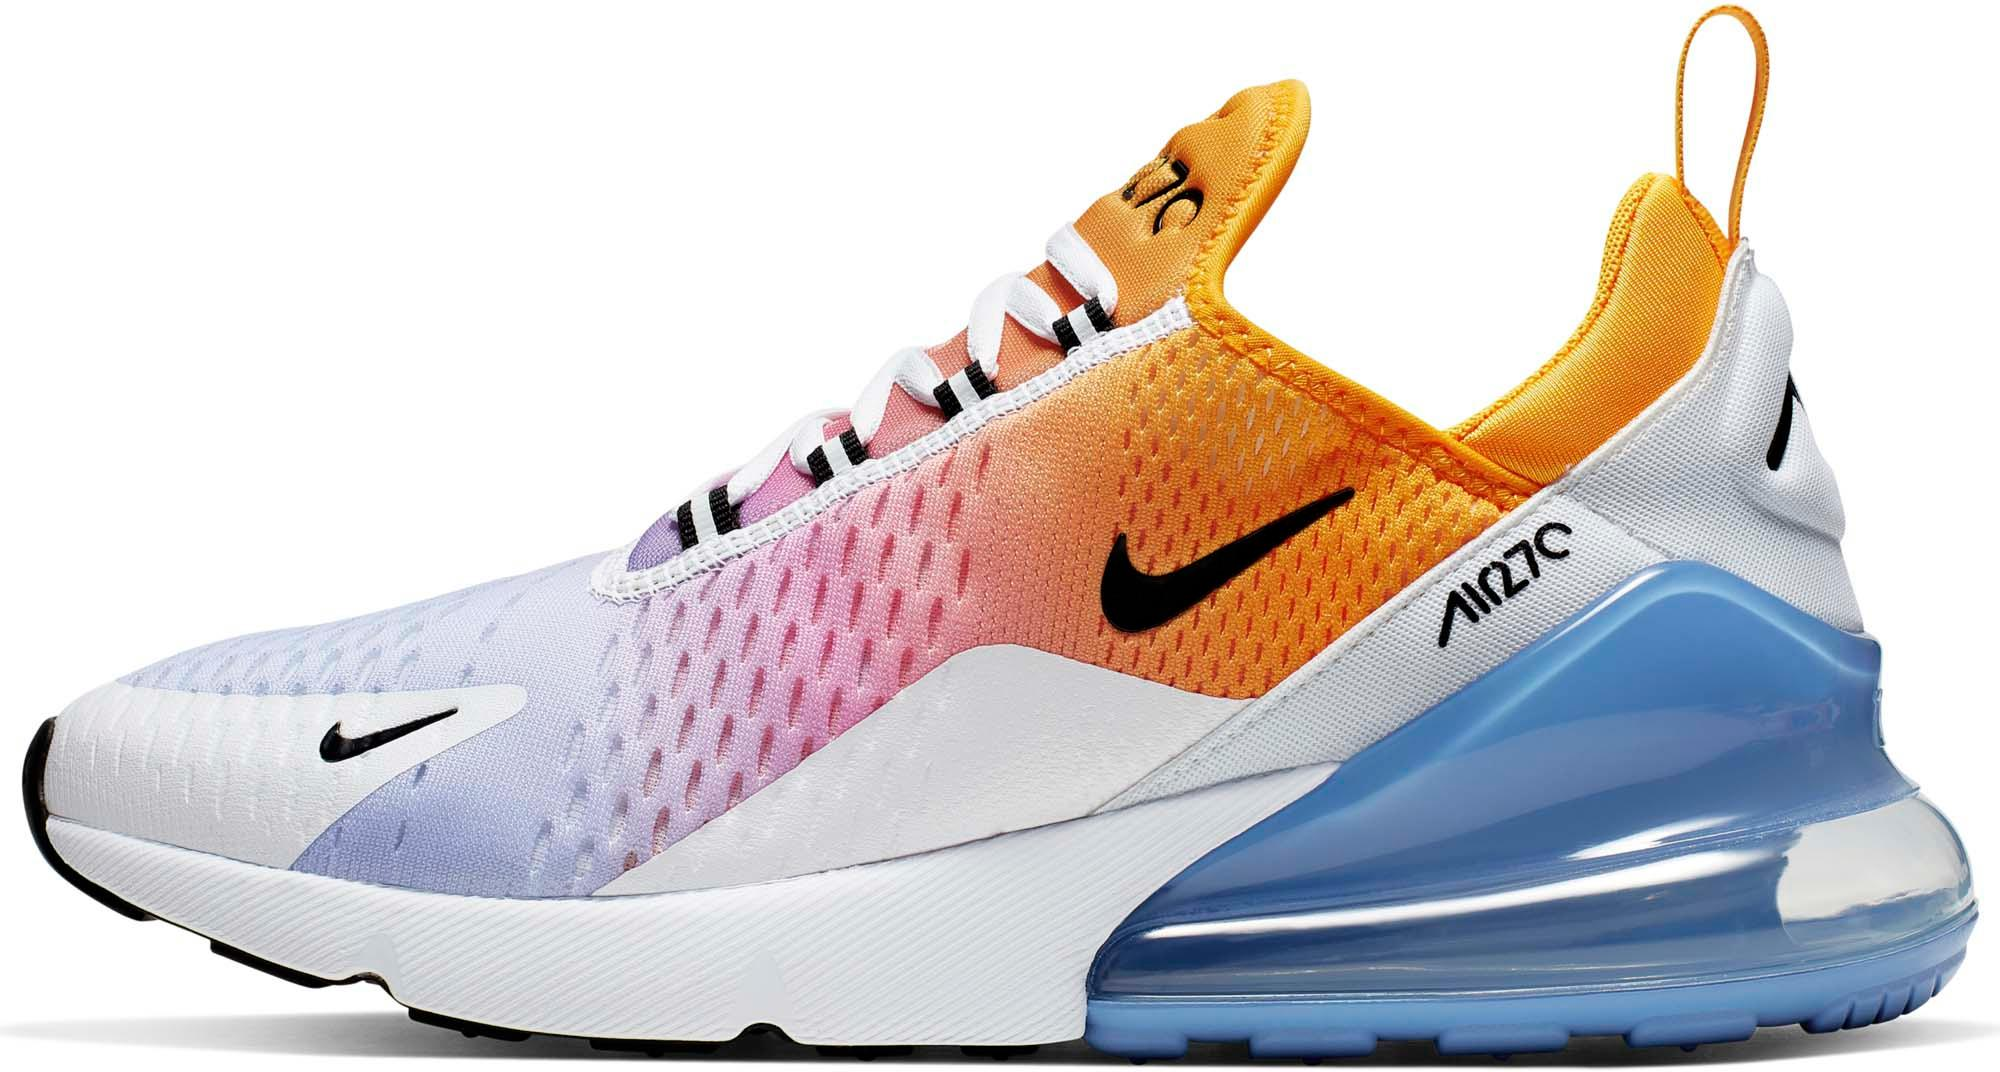 look out for best online release date: Nike Air Max 270 Sneaker Herren university gold-black-university blue im  Online Shop von SportScheck kaufen